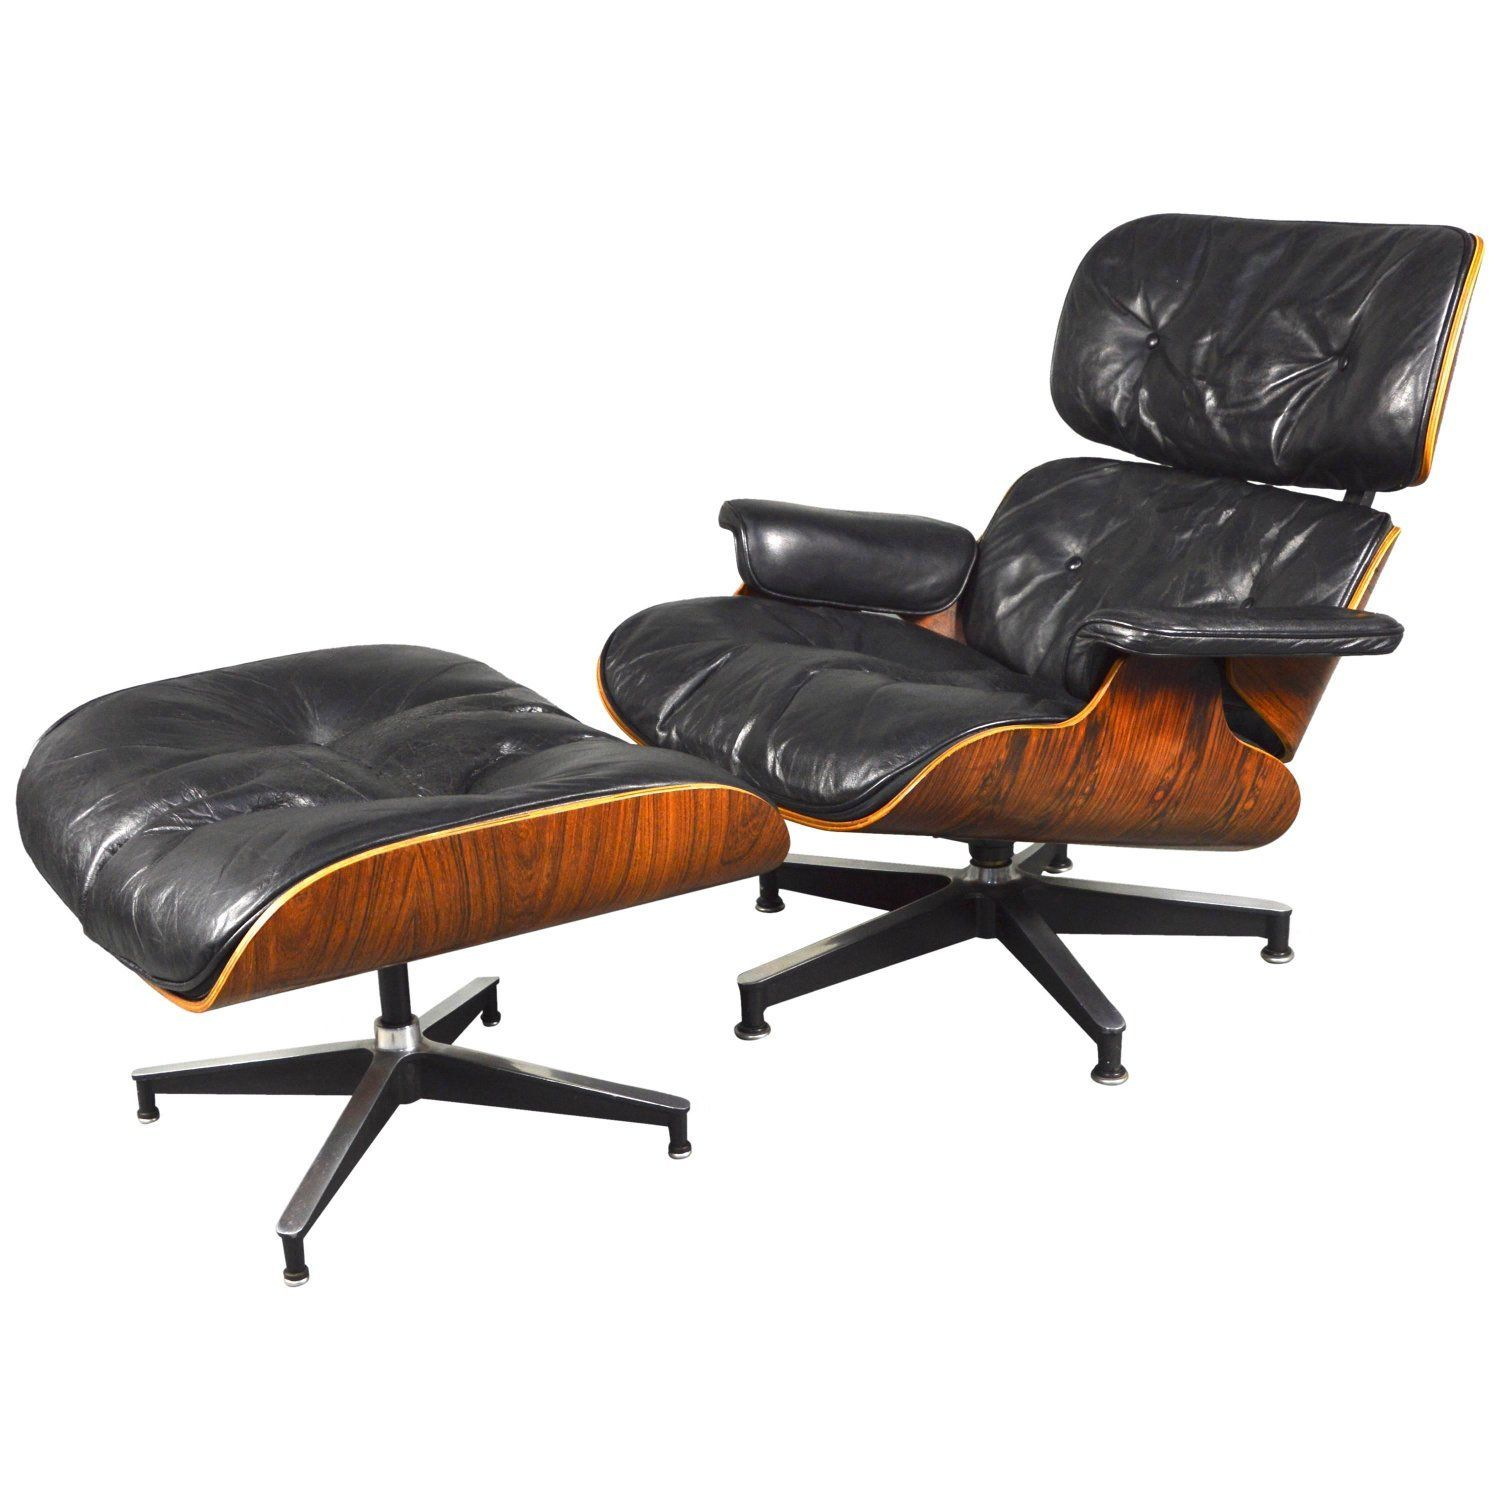 2nd Generation Eames Lounge Chair And Ottoman By Herman Miller 1950 1960 Eames Lounge Chair Wayfair Living Room Chairs Wood Lounge Chair